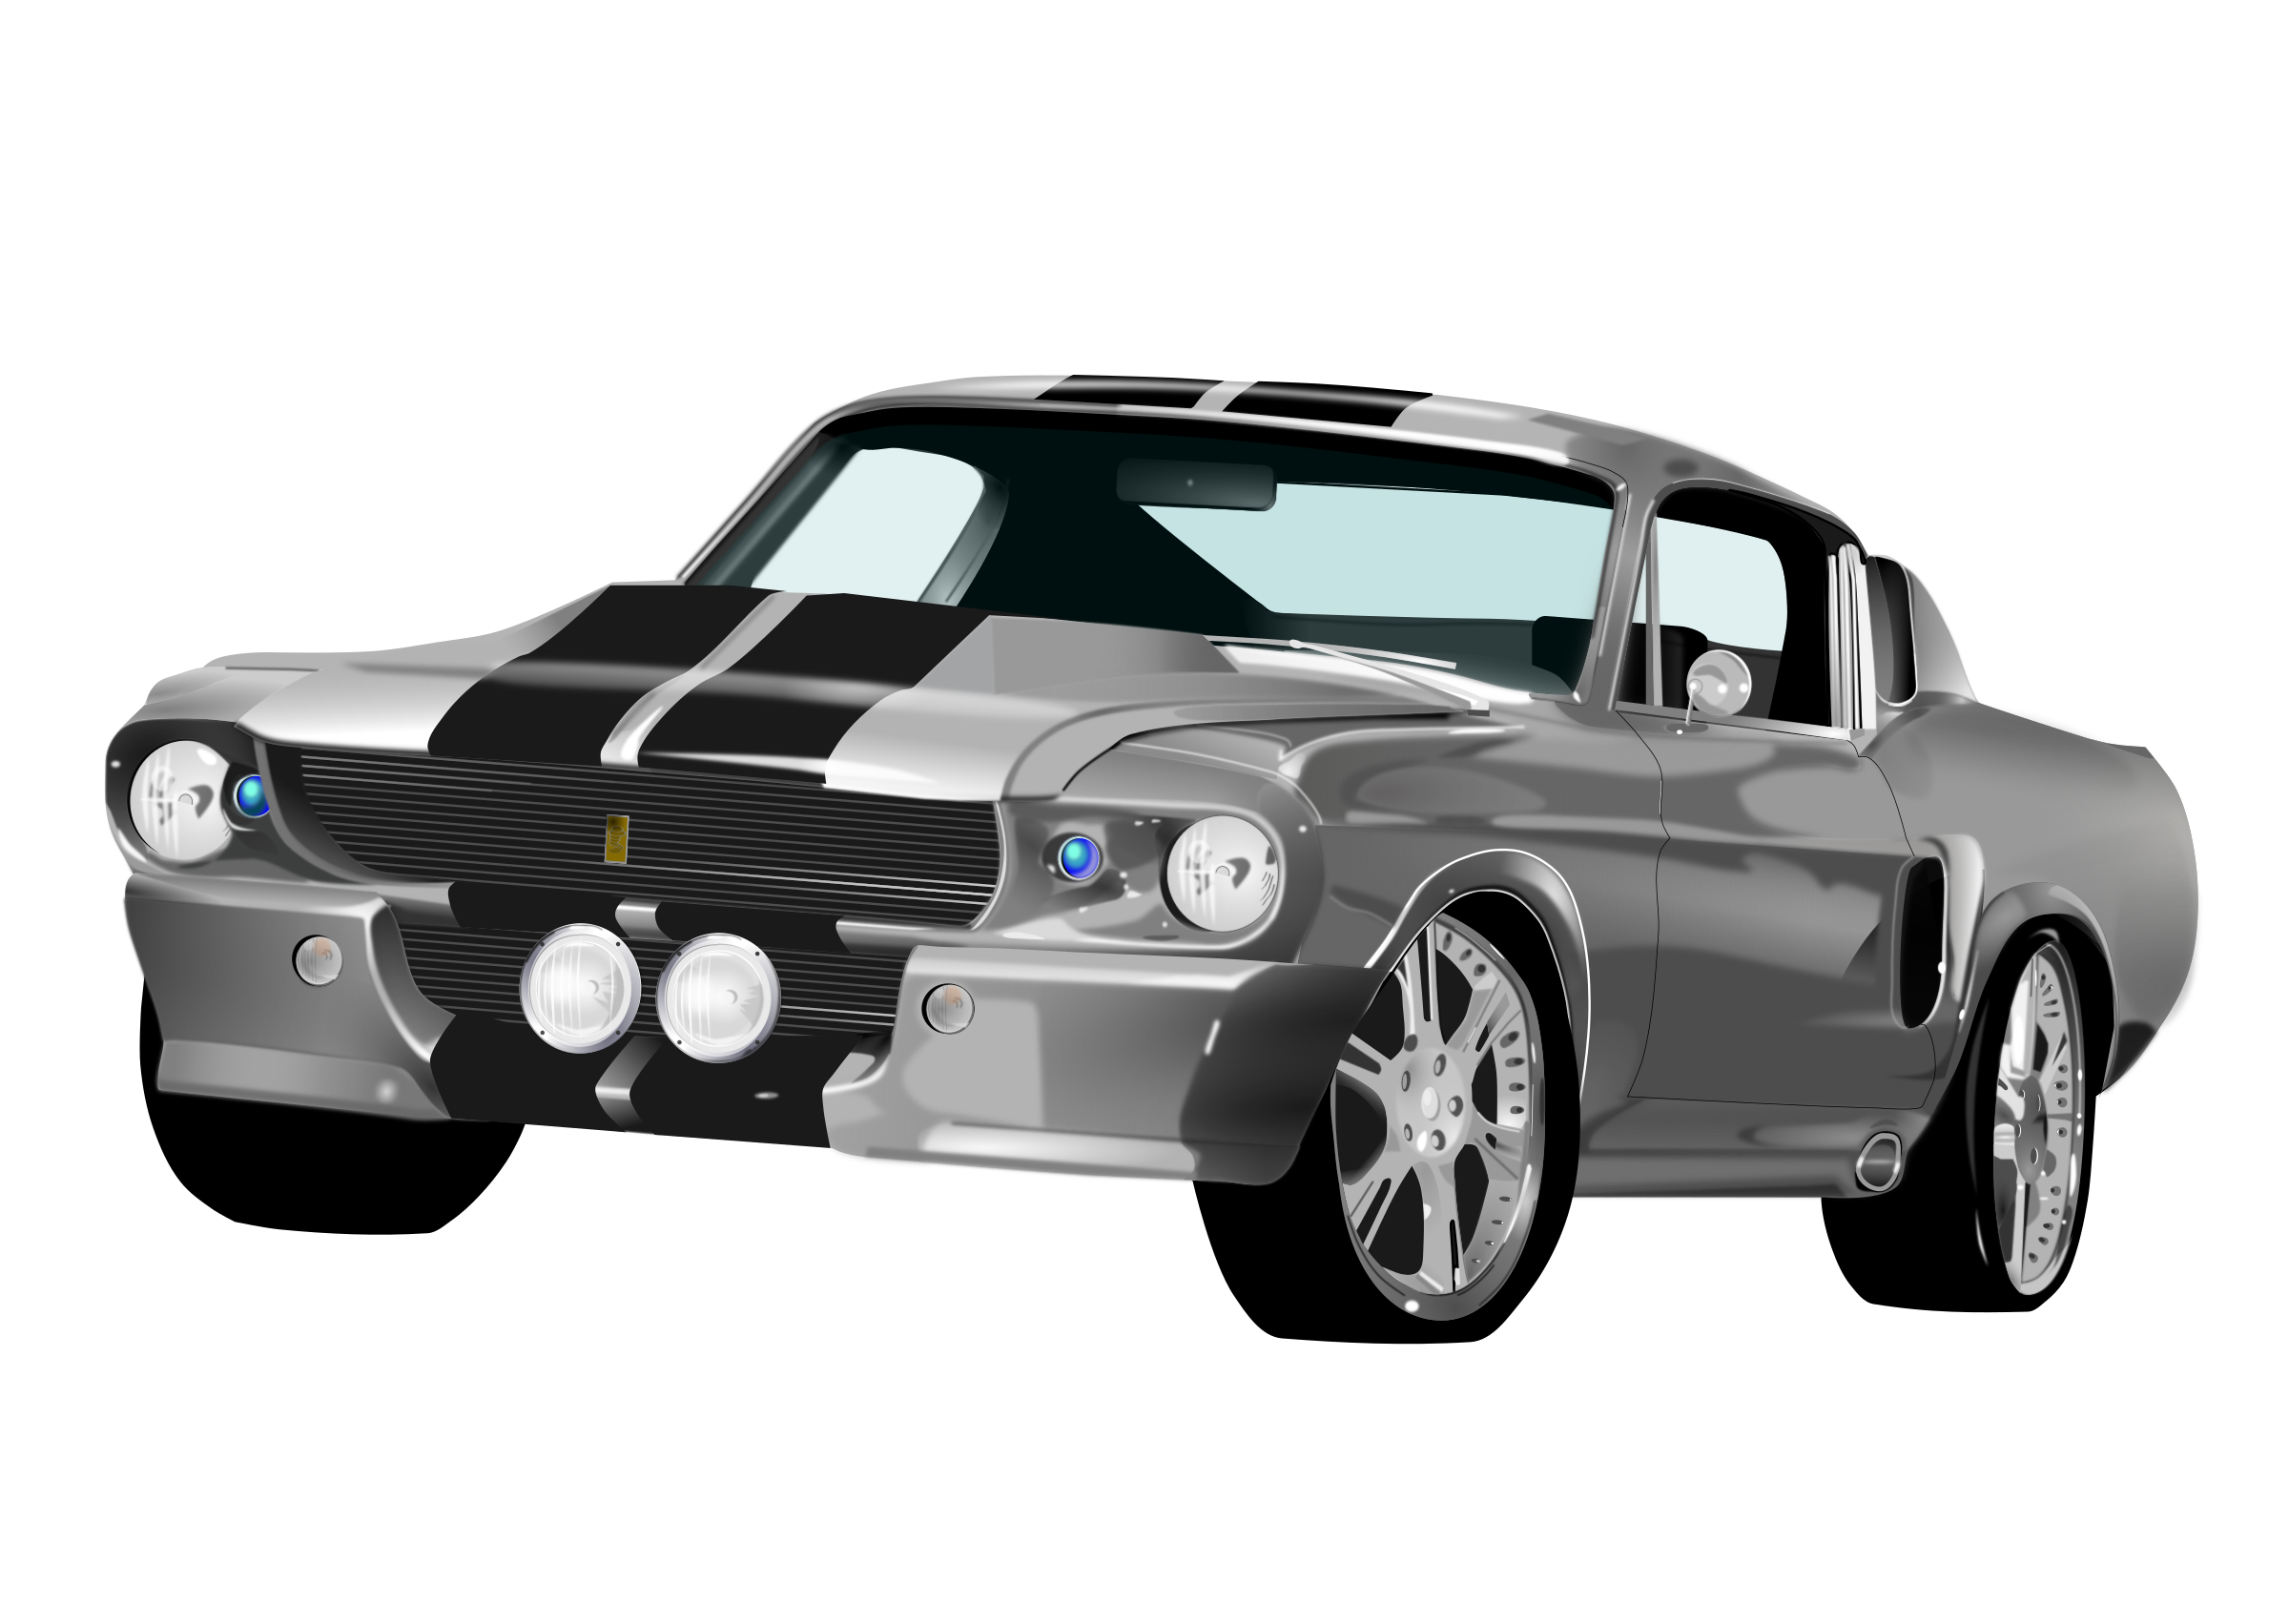 Classic mustang car clipart clip black and white library Clipart - Mustang 500gt clip black and white library